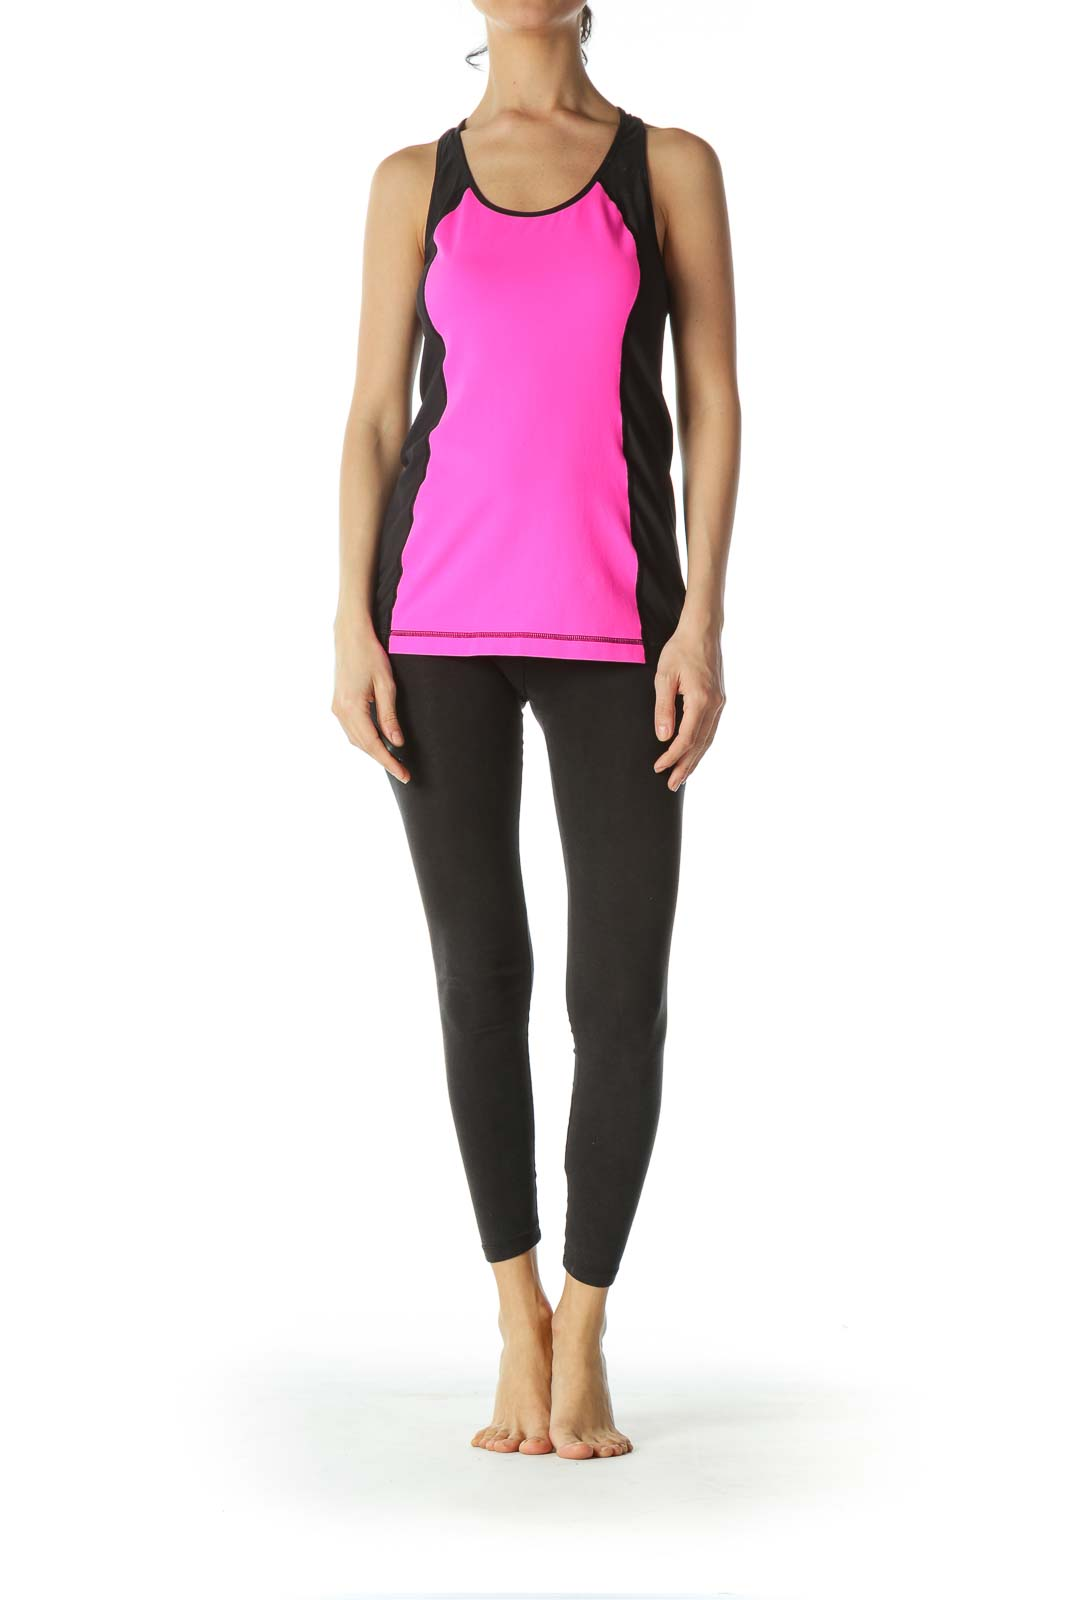 Fluorescent-Pink Black Racerback Mesh Sports Top